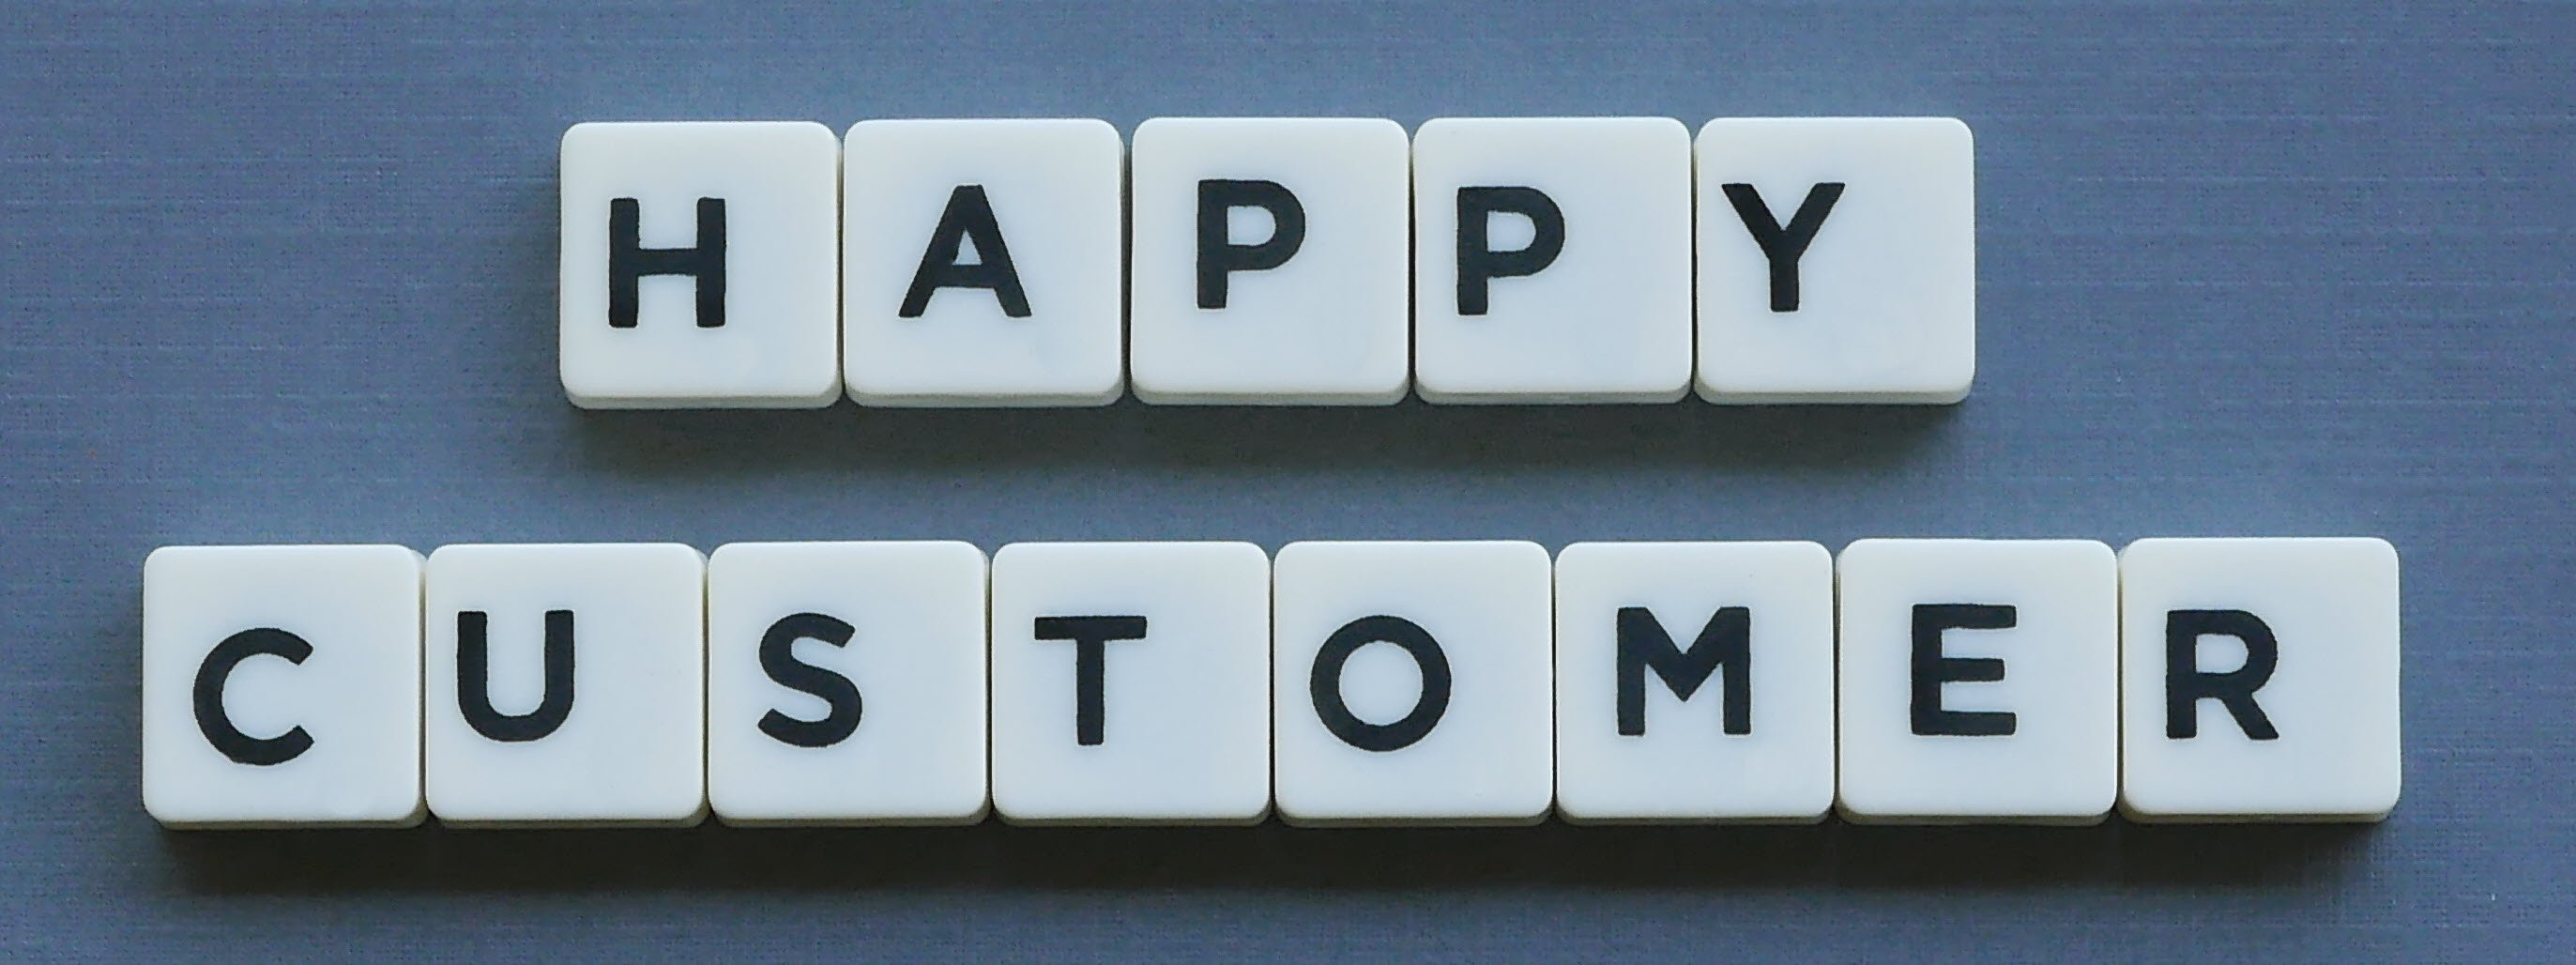 Happy Customer Image blocks for Customer Loyalty Program Blog